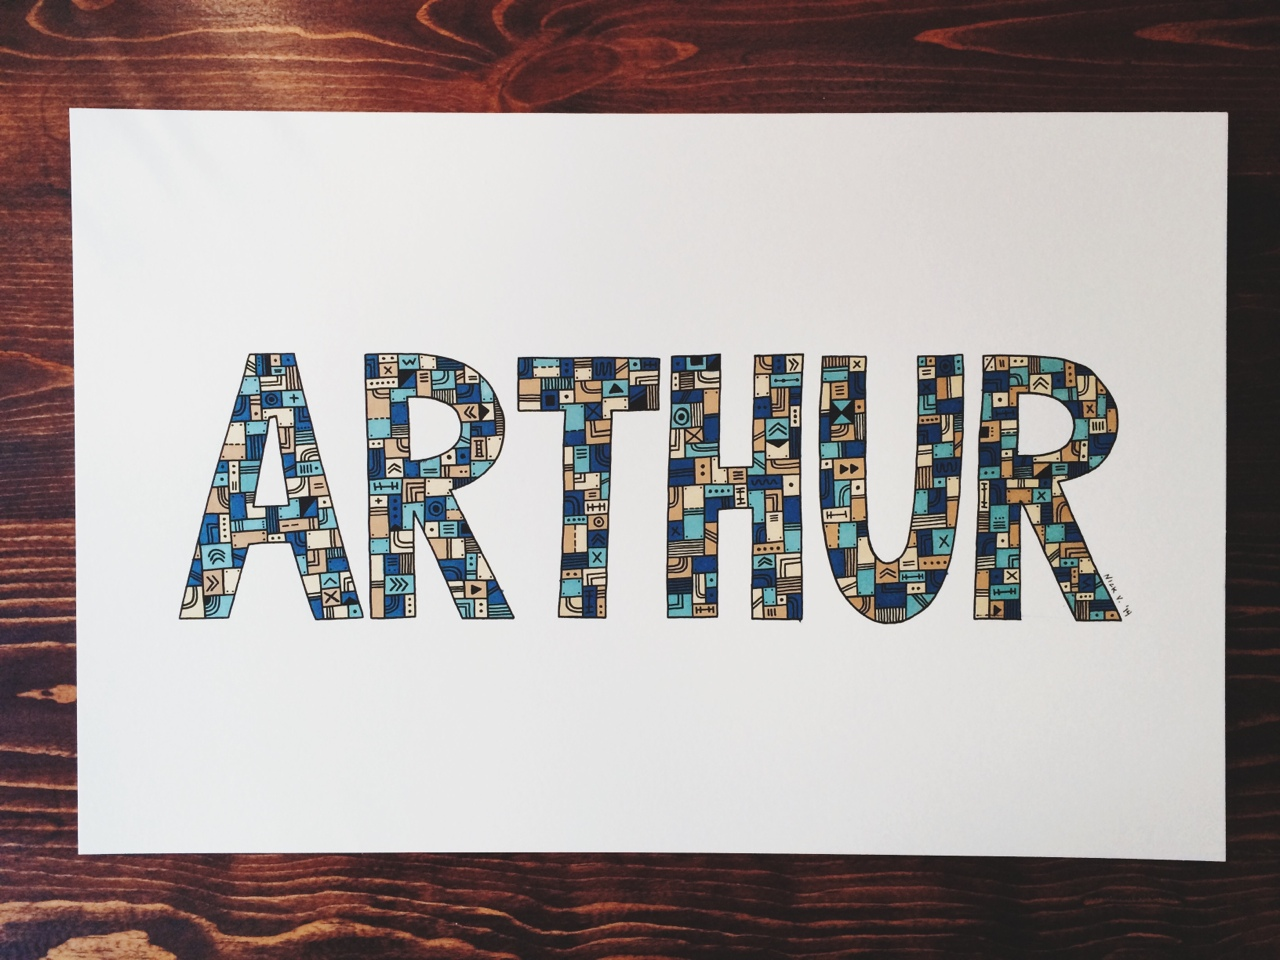 ARTHUR | 11x17    recently finished up a commission piece. not too shabby. pretty happy with how it turned out.